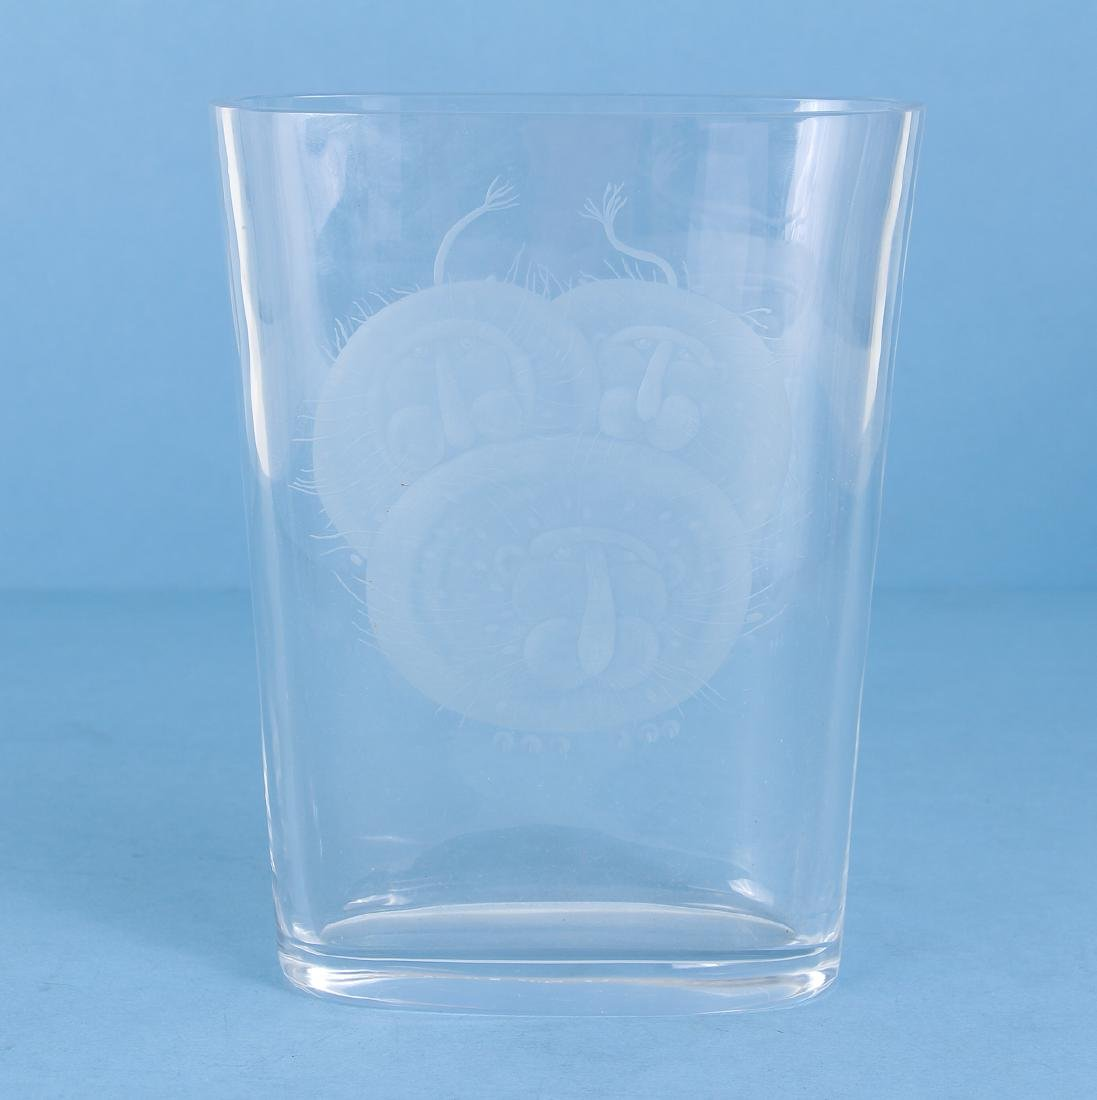 Orrefors Crystal Vase Etched with Lions